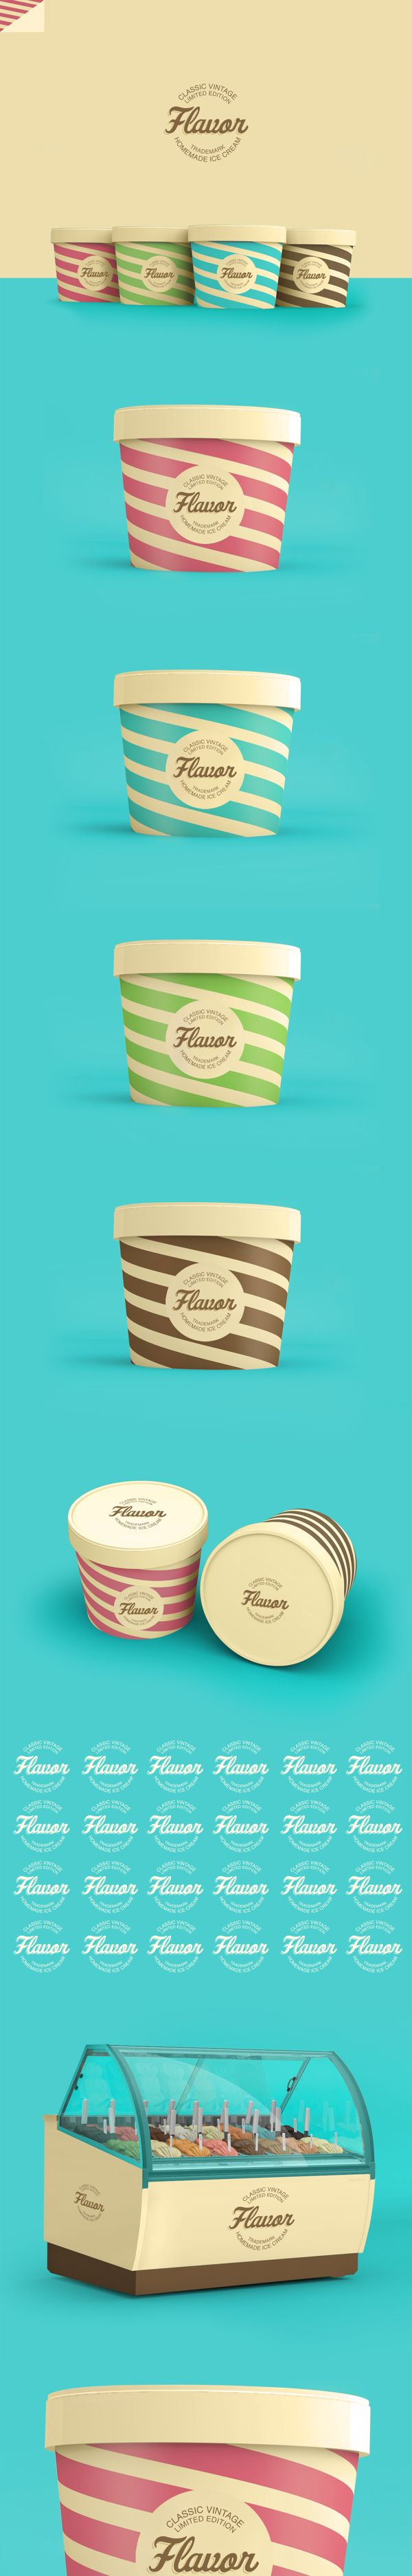 fun packaging design | color scheme | simple | branding | appealing  //  Flavor Ice Cream #Packaging by Renan Vizzotto, via Behance PD                                                                                                                                                     Más